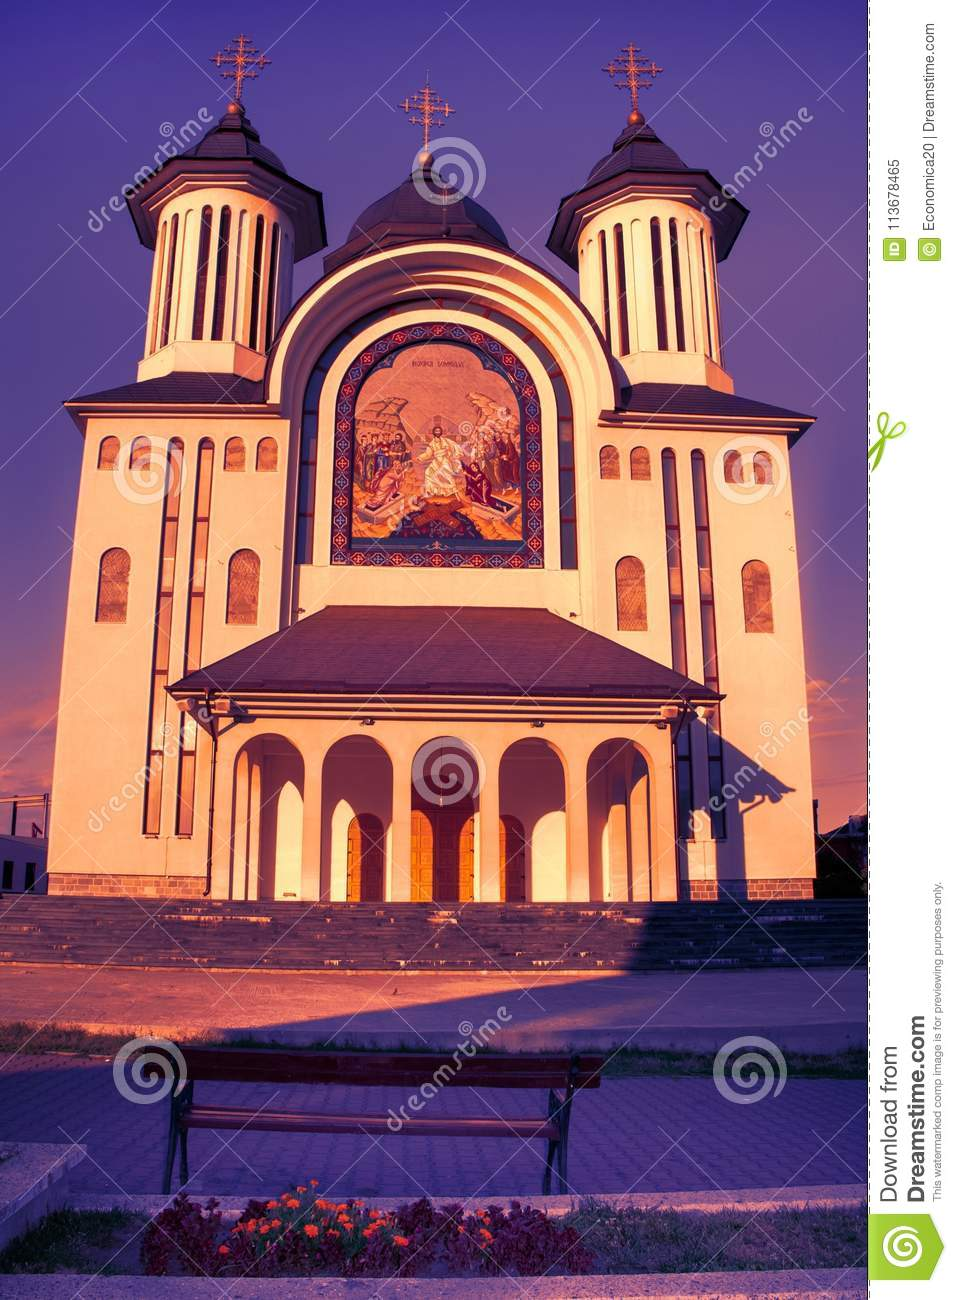 The Episcopal Cathedral of Drobeta Turnu Severin city